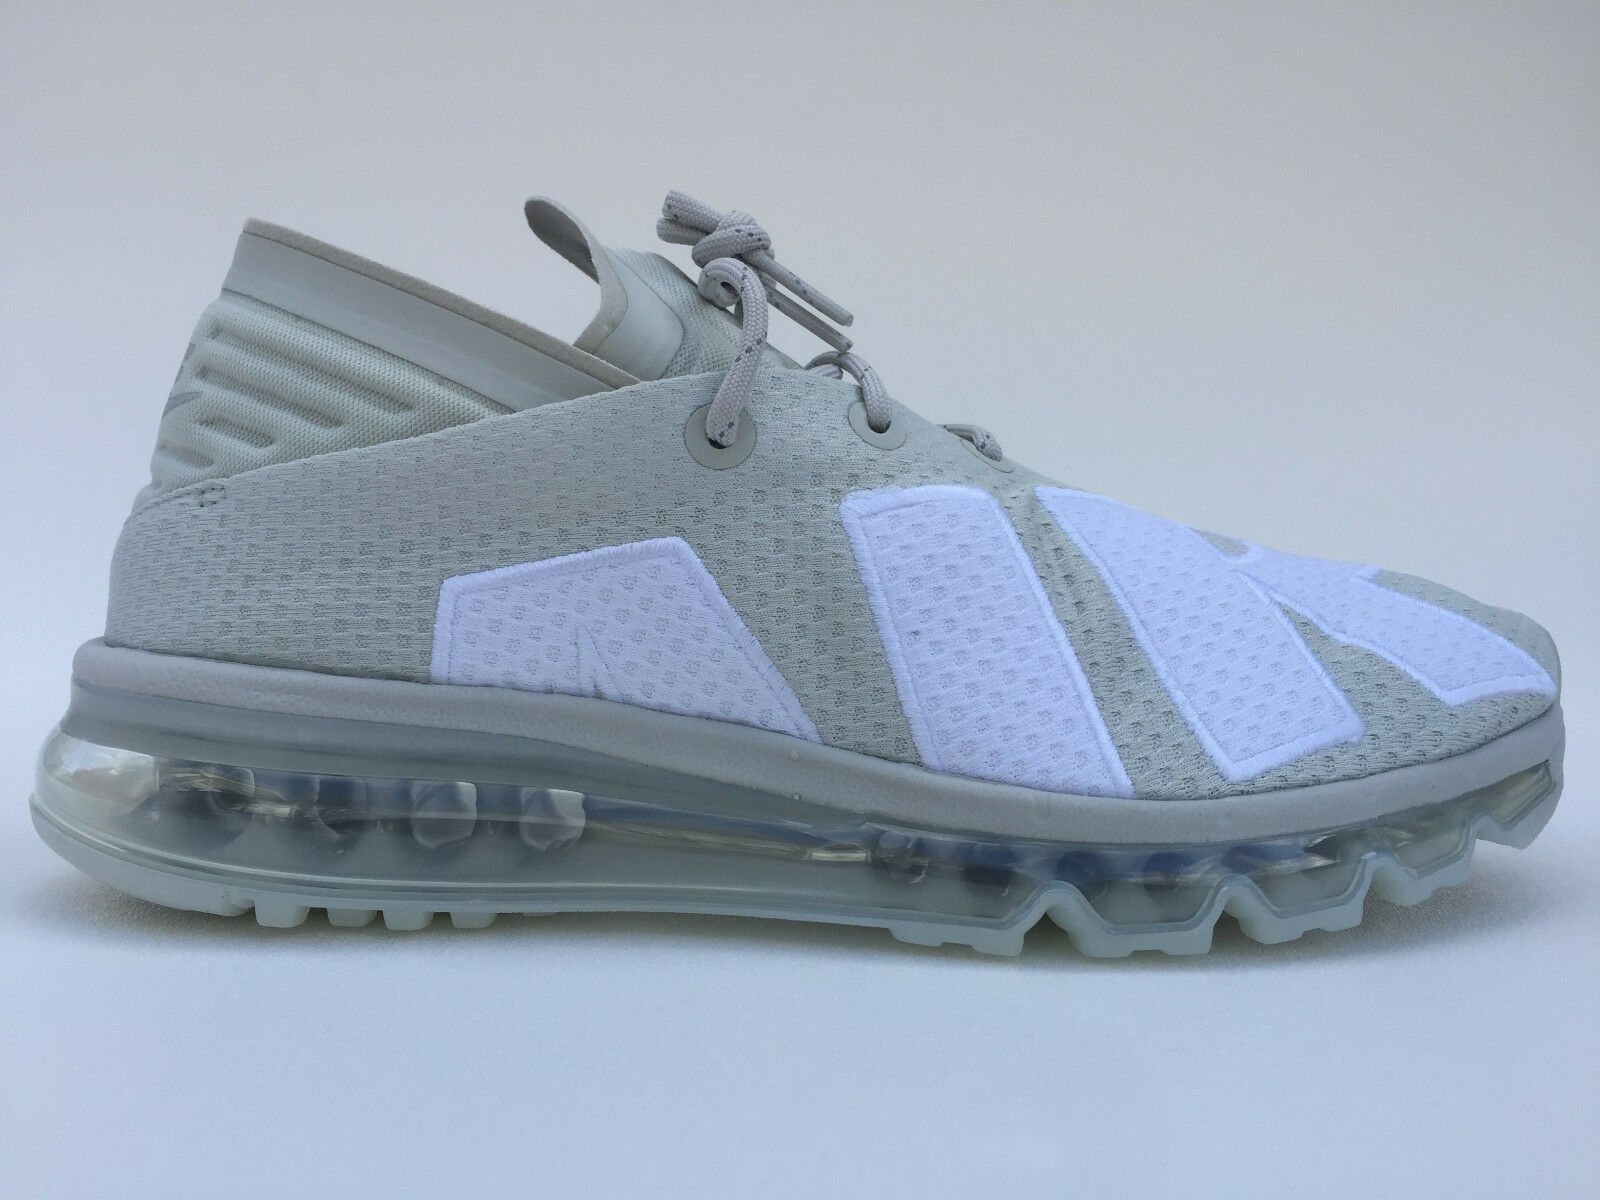 Hommes NIKE Air Max Flair RUNNING Chaussures Bone